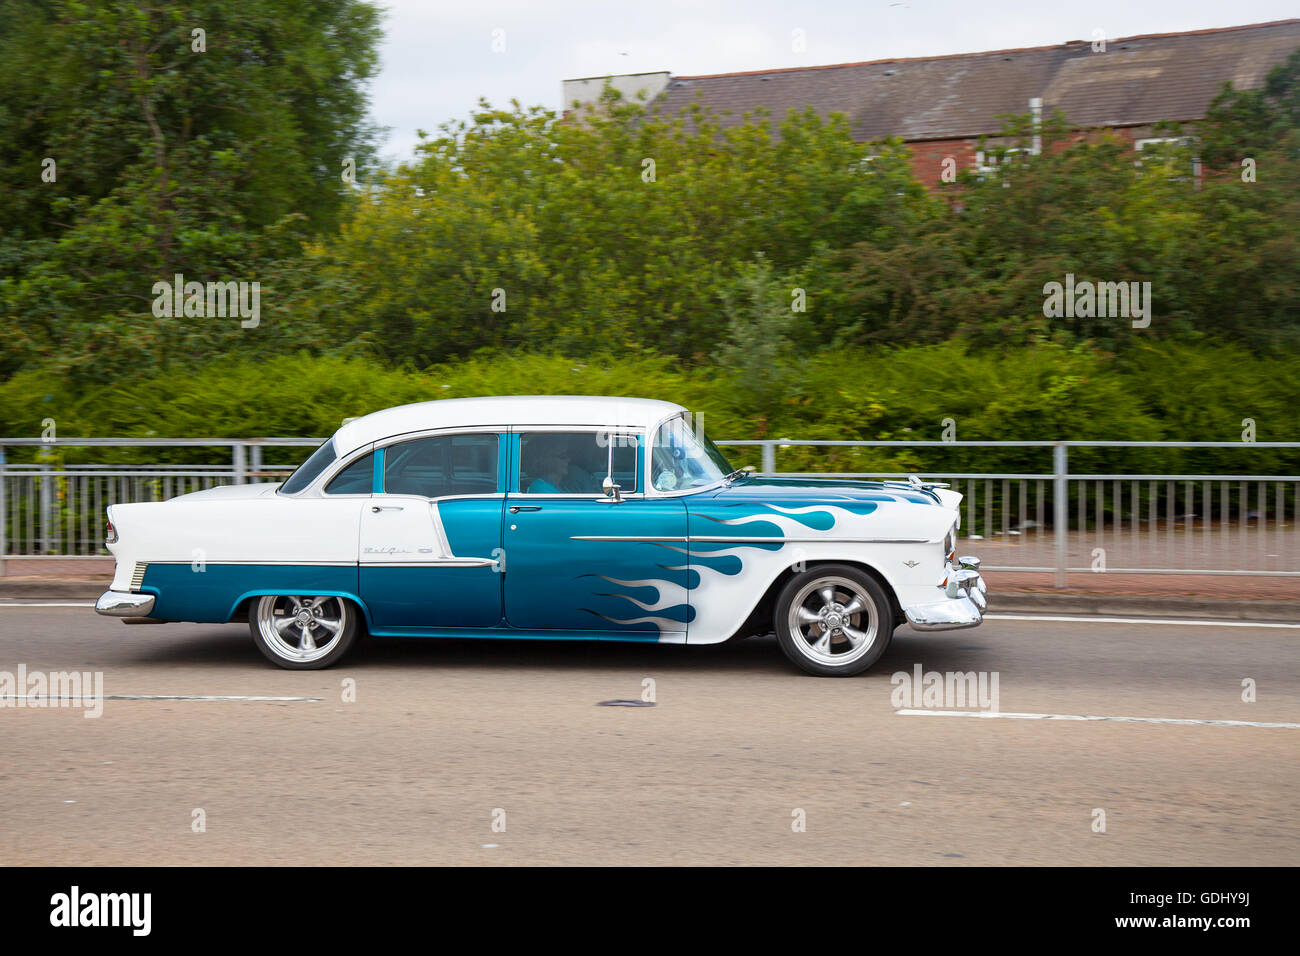 1955 Chevy Bel Air Stock Photos Amp 1955 Chevy Bel Air Stock